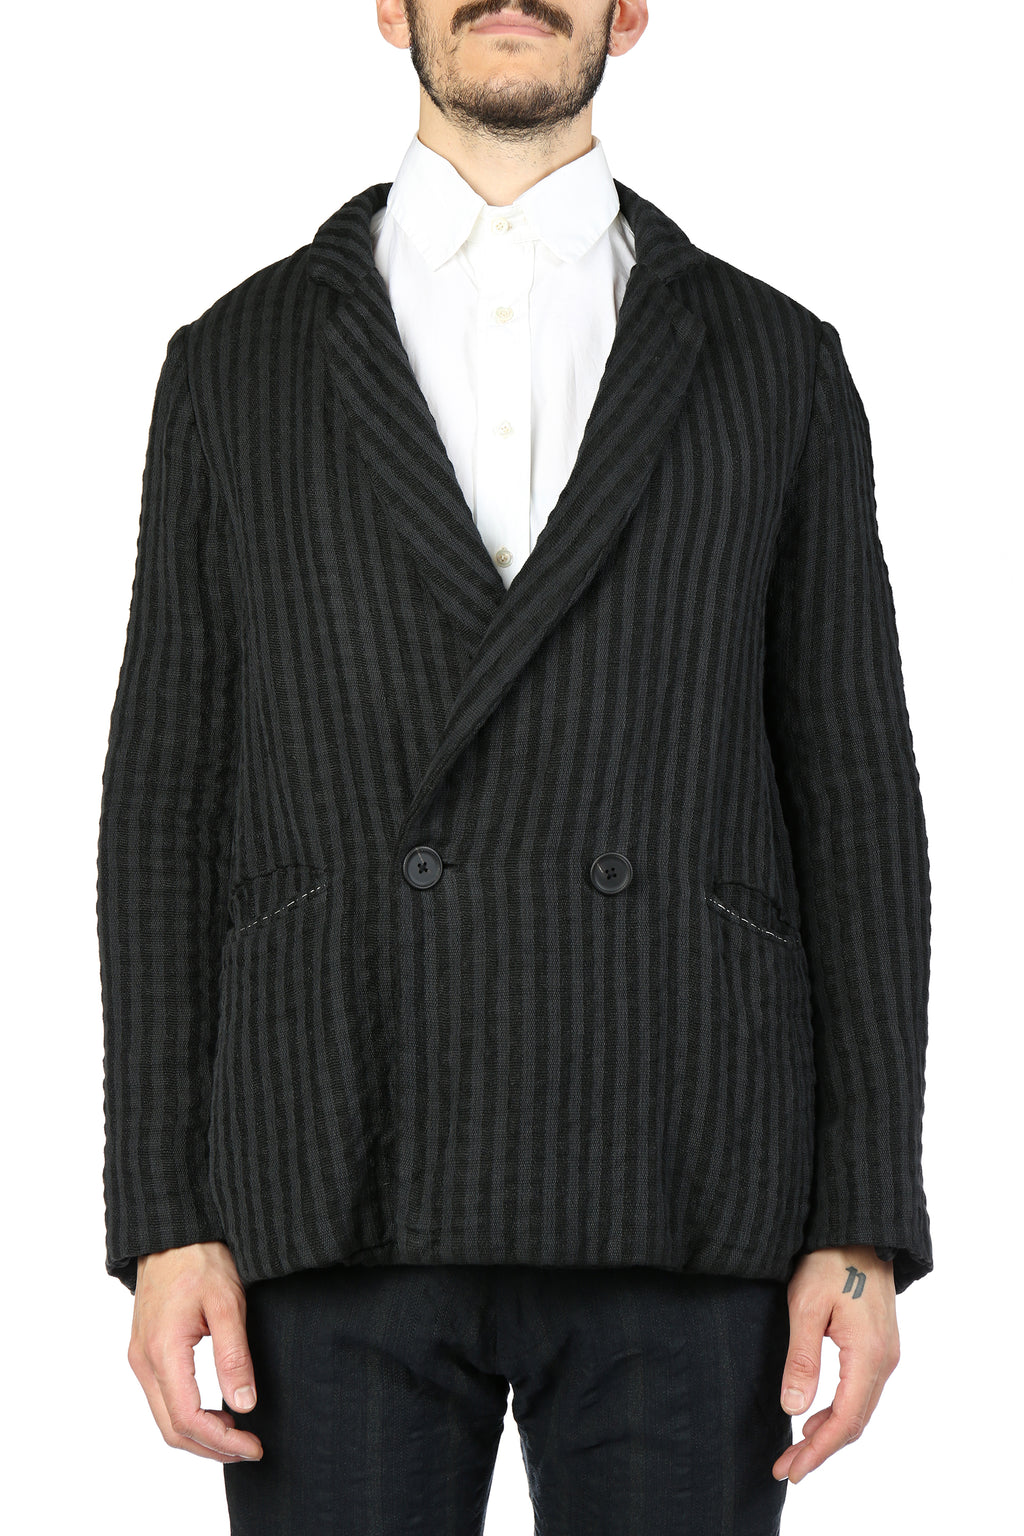 GEOFFREY B SMALL MEN HANDMADE  RELAX FIT DOUBLE BREASTED NOTCH LAPEL JACKET WITH PATCH POCKETS